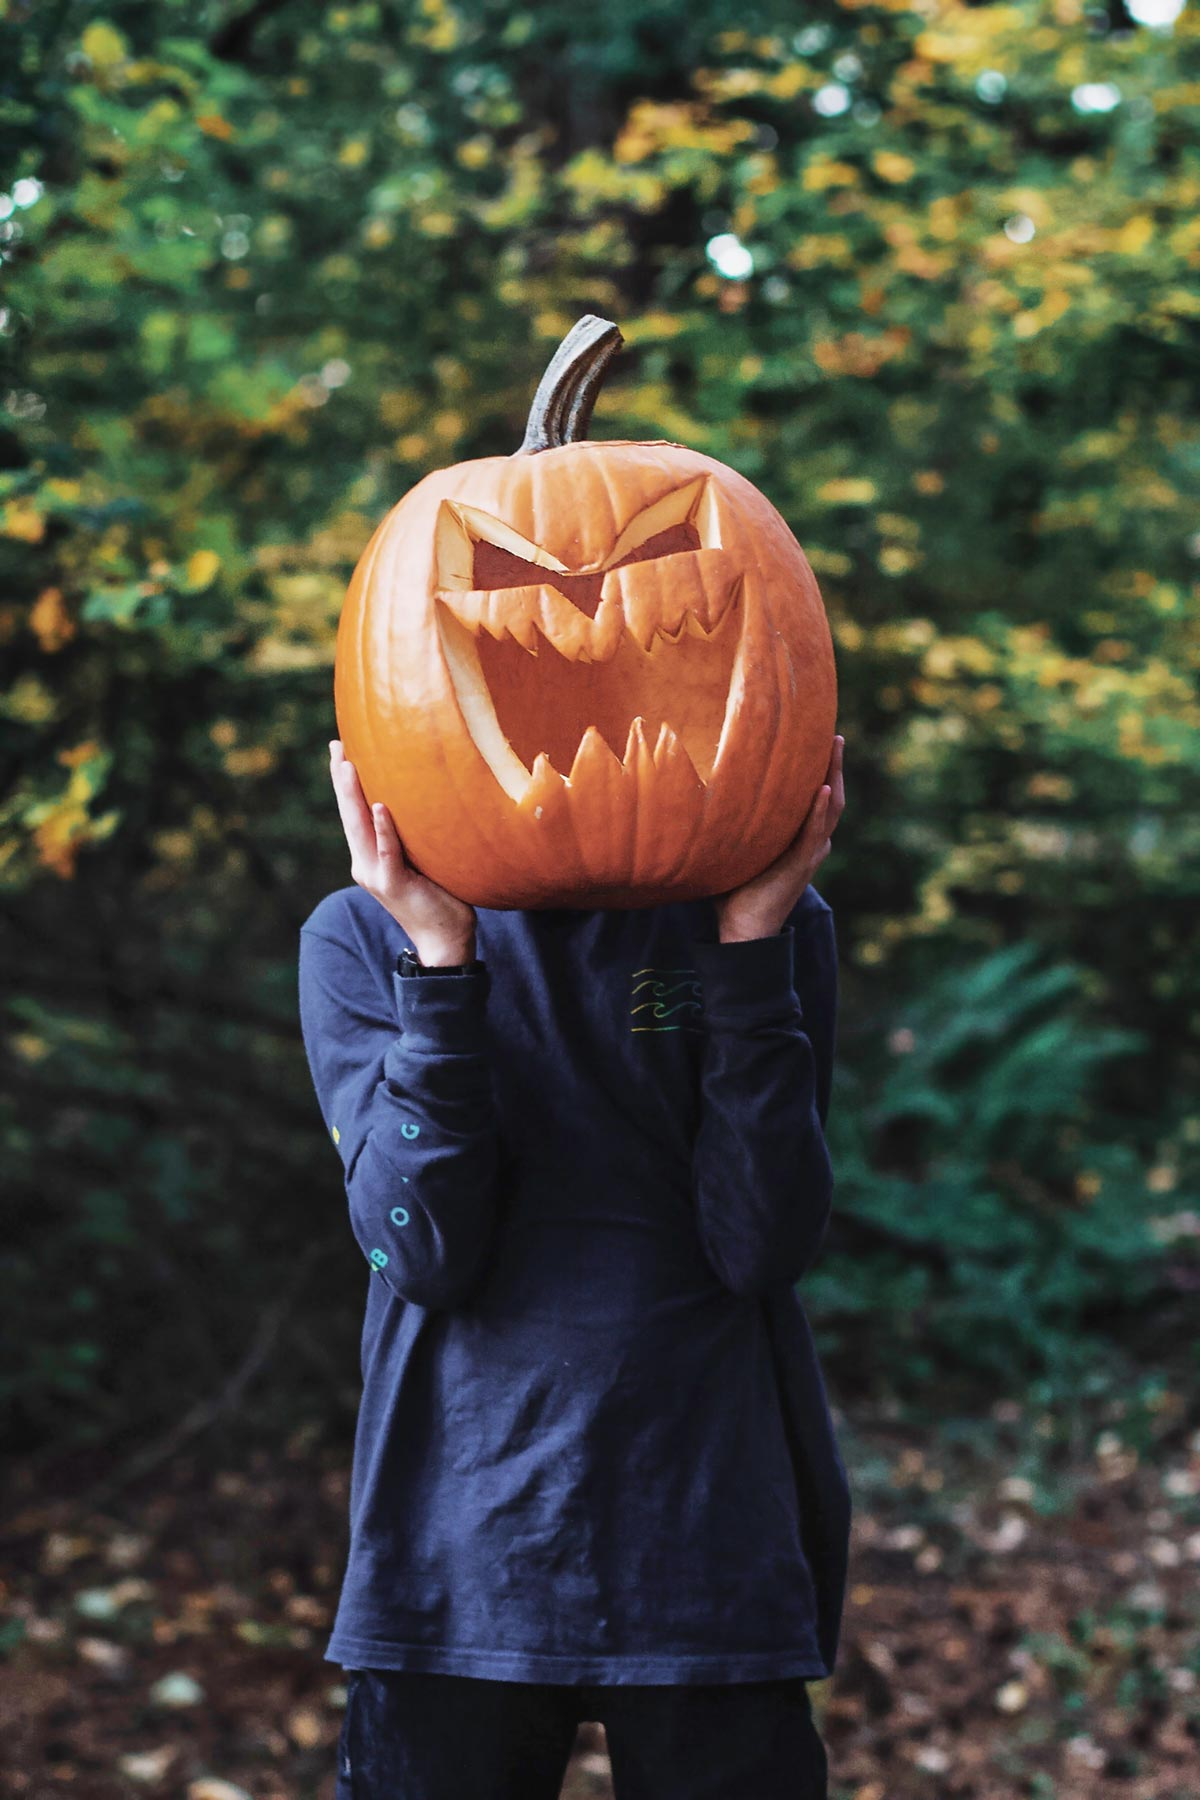 Child Holding a Carved Pumpkin